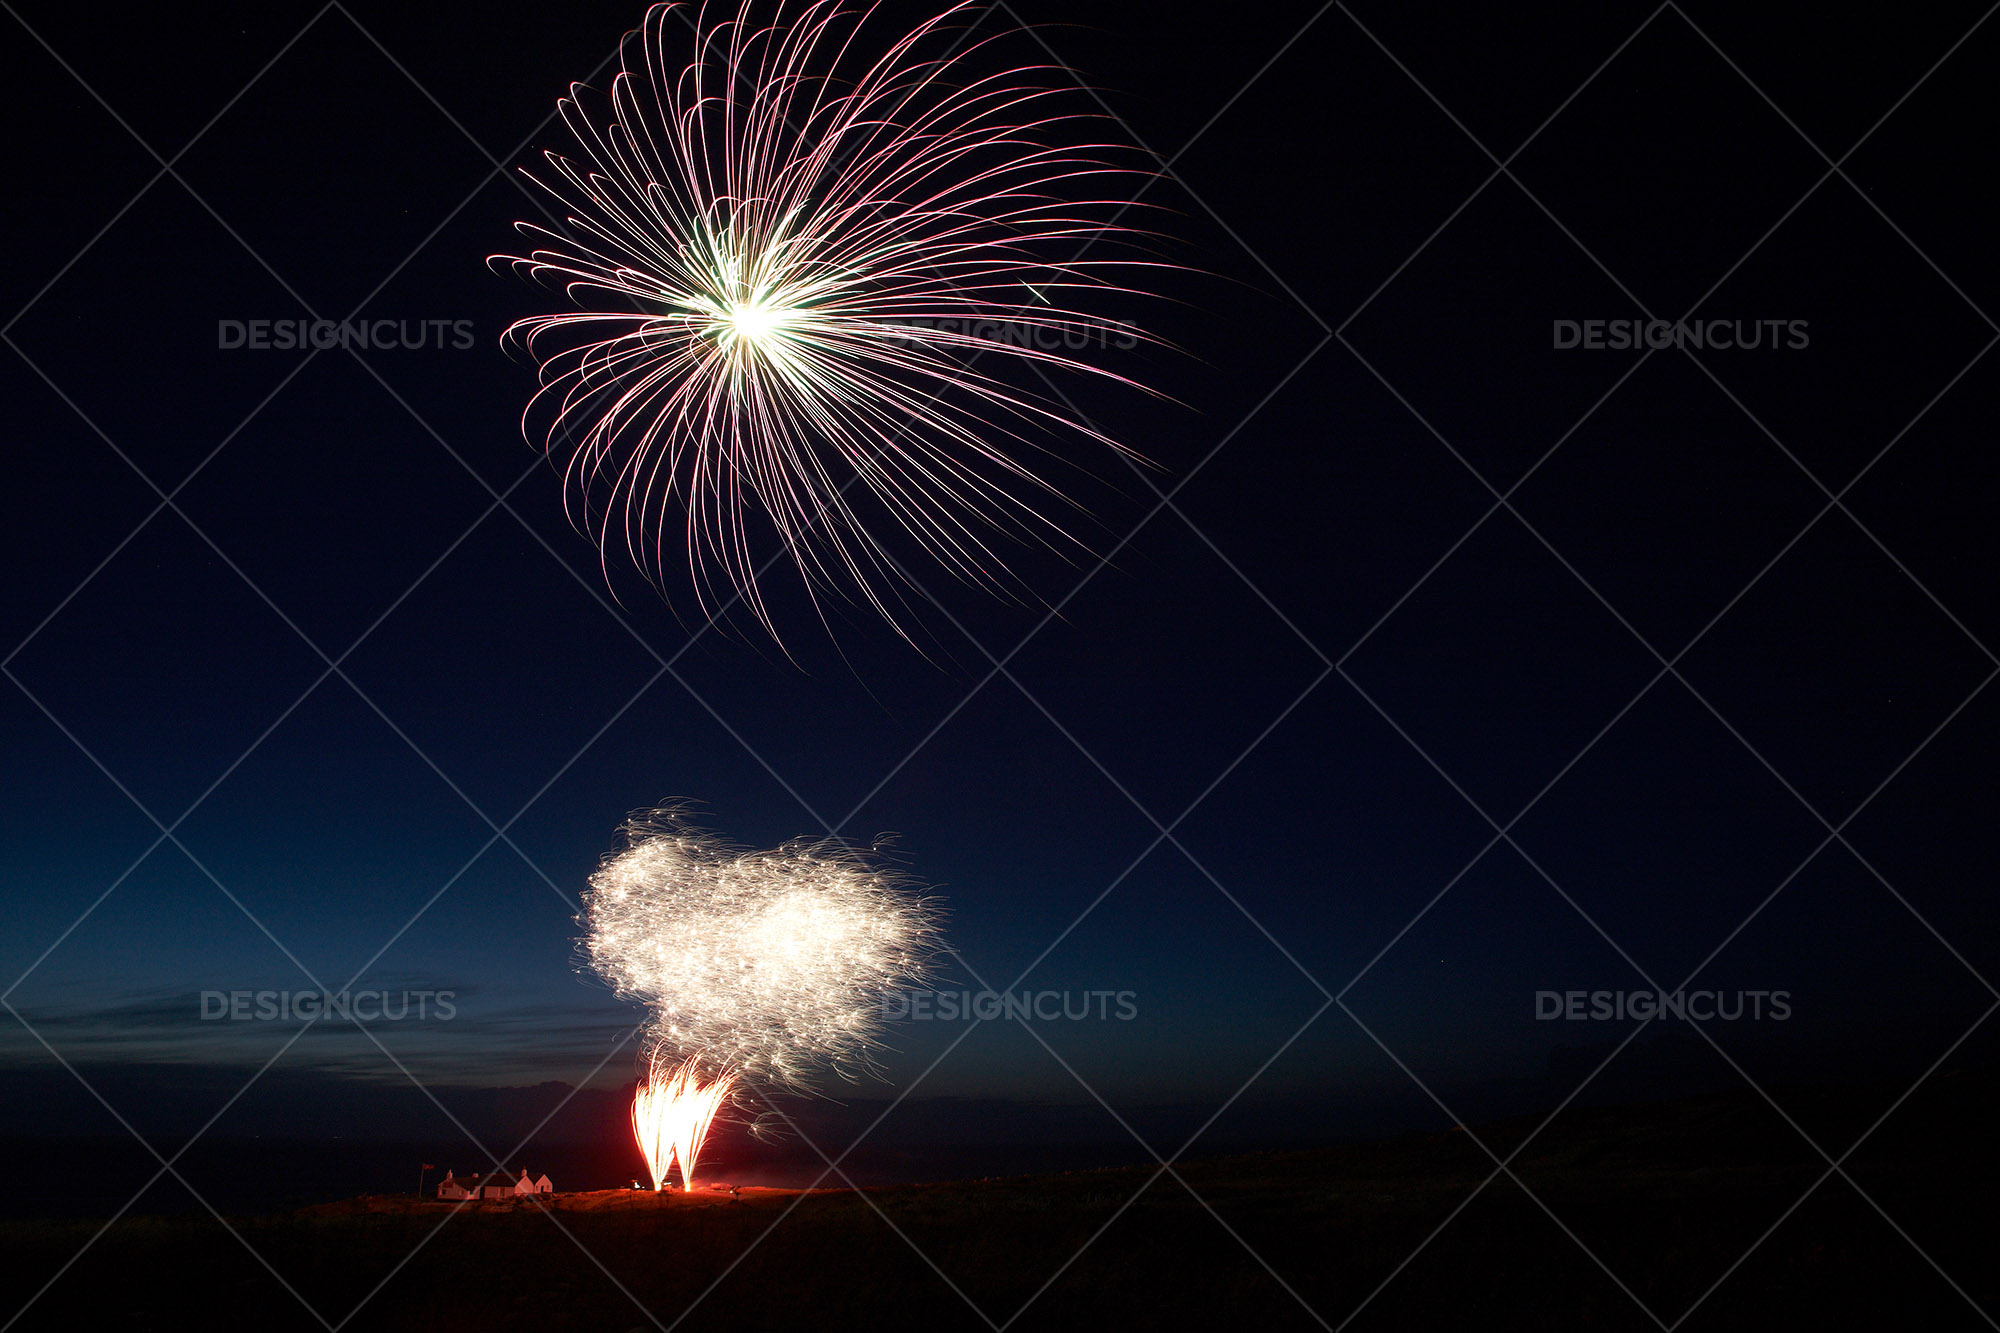 Motion Blurred Fireworks Light Up Night Sky 1